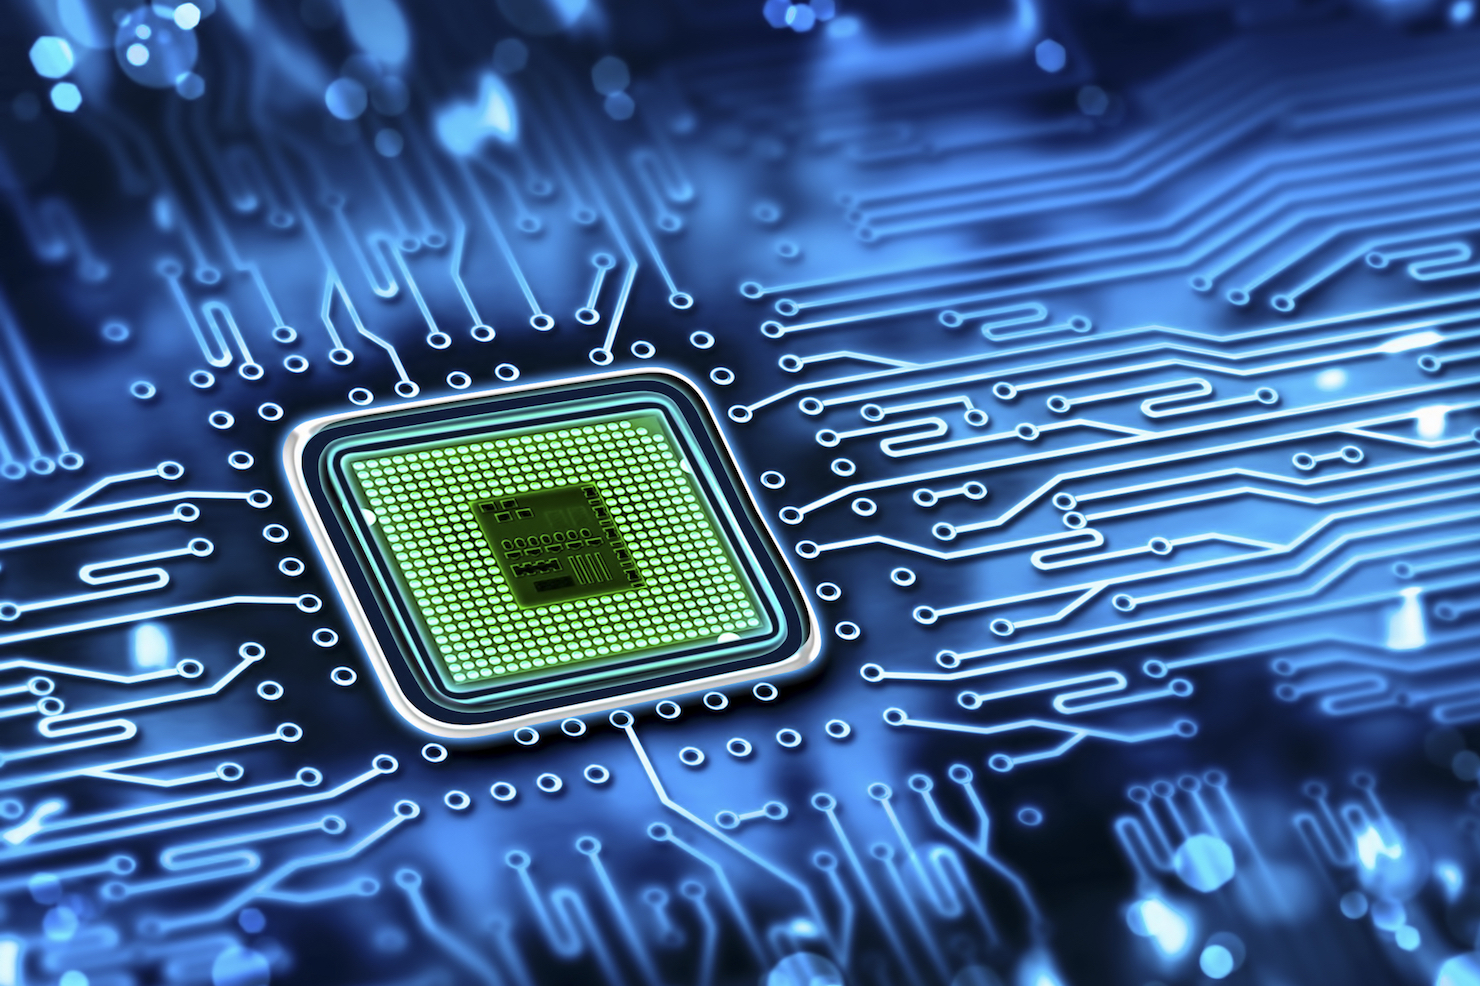 Computer chip, semiconductor stock image